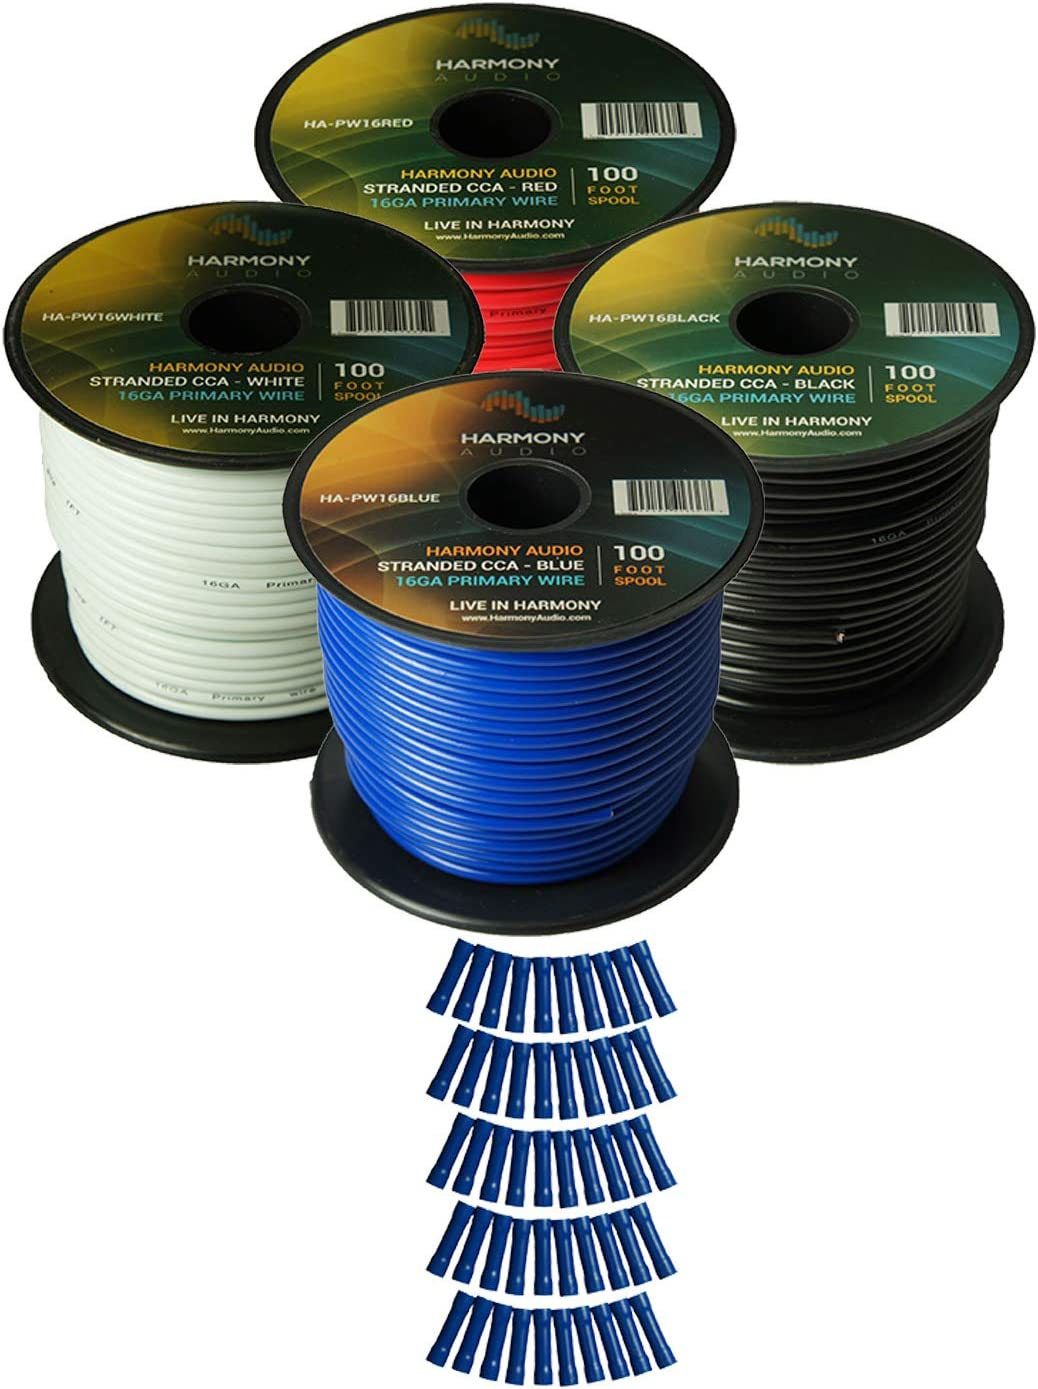 Harmony Car Primary 16 Gauge Power or Ground Wire 100 Feet Spool Black Cable New